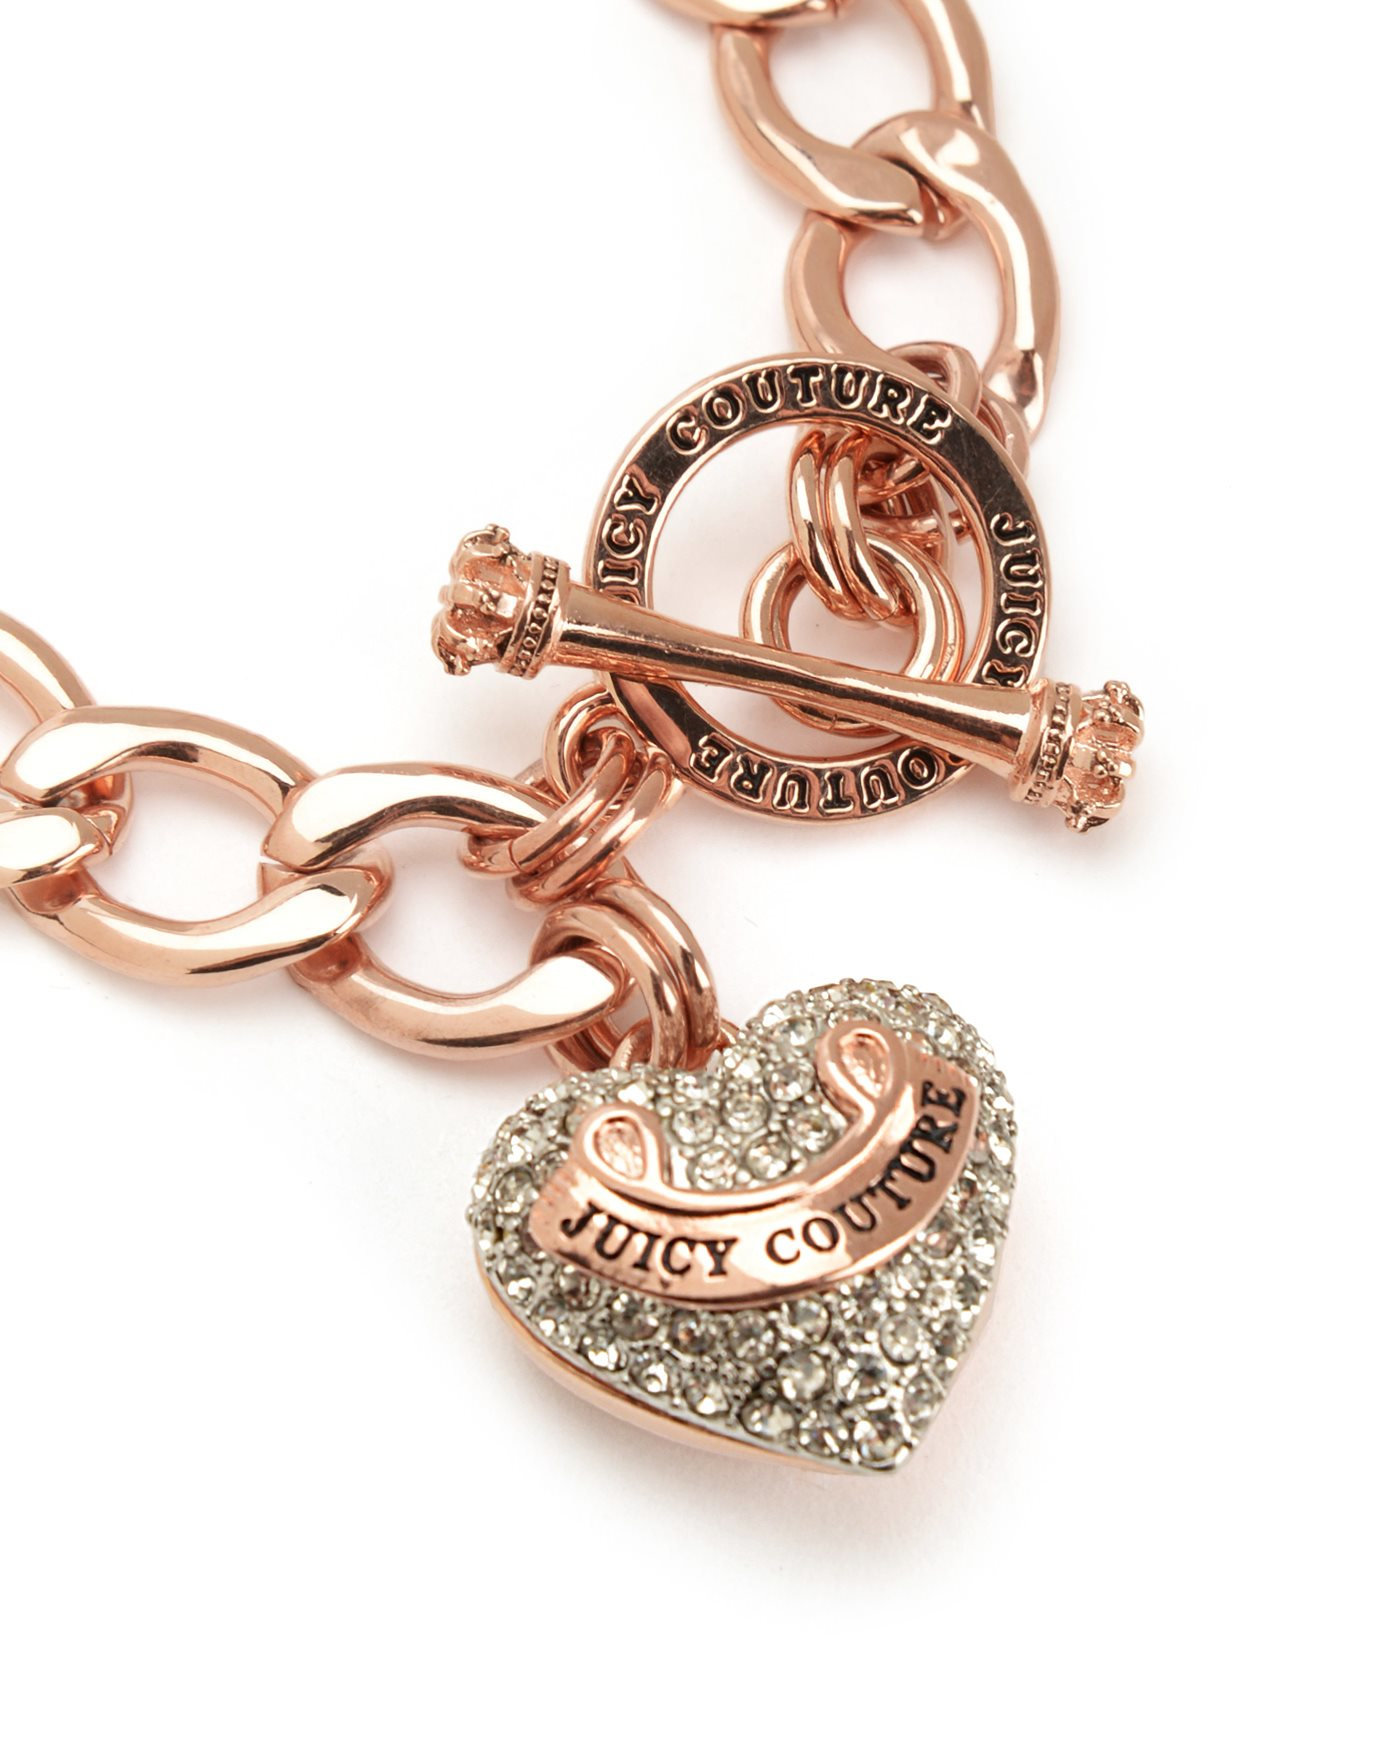 Gold Starter Charm Bracelet Juicy Couture